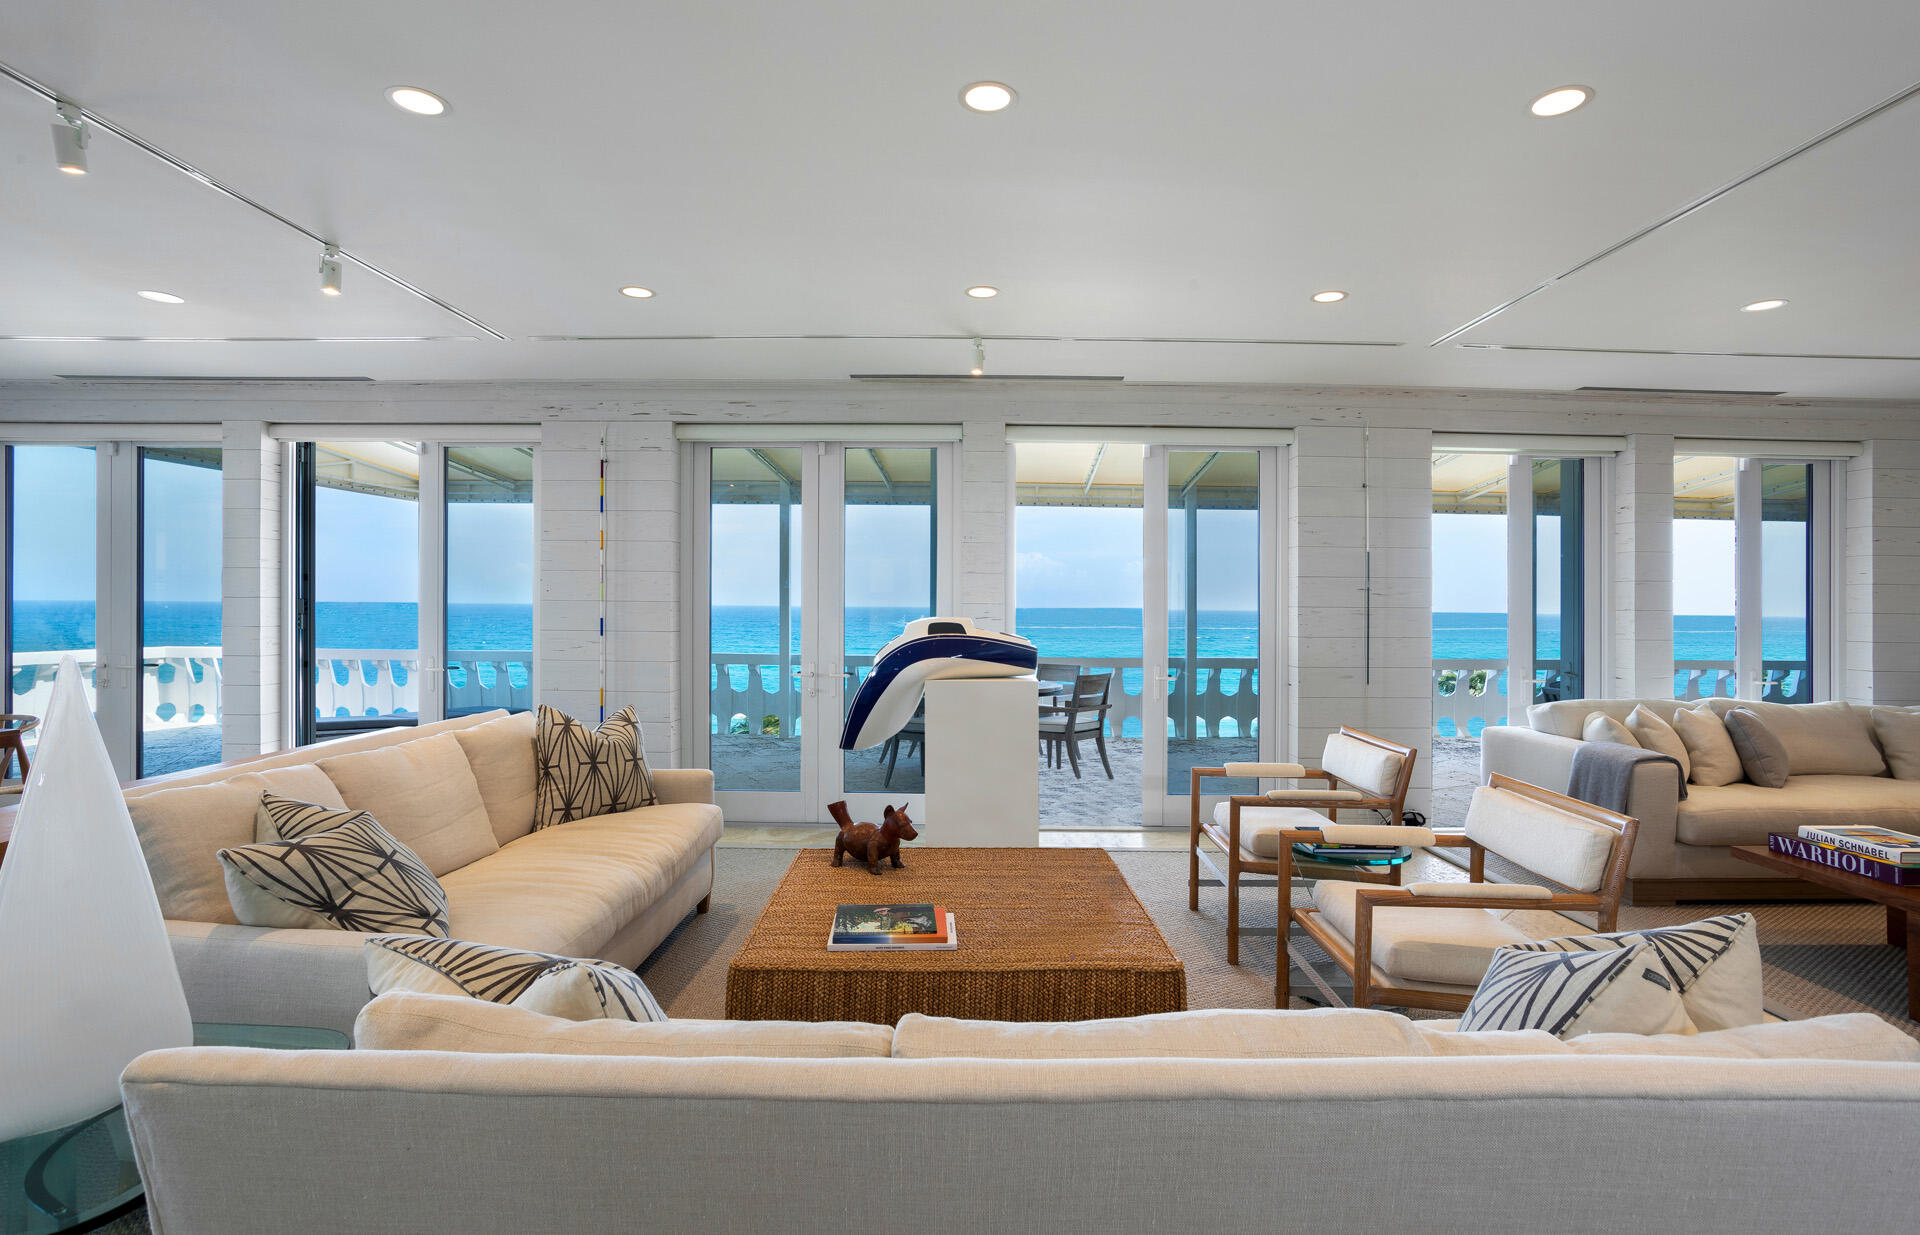 Stunning Penthouse apartment in the coolest mid-century building in Palm Beach. PH-C offers 3,852 total sq. ft. which includes a 1,624 SF terrace overlooking the Atlantic Ocean. The apartment consists of a grand room with high ceilings and French doors opening onto the terrace, a spacious master also with doors opening onto terrace, walk-in closet and exercise room, an entry foyer and powder room and a kitchen which opens onto the main room. The style and sensibility of the apartment will appeal to a sophisticated buyer similar to the current owners who have an extensive art collection and the previous owner who was a world-class fashion designer. The 300 Building itself has been dramatically improved over the last ten years  the choice of designs and furnishings in keeping with the Modernist architecture. This is an exceptional oceanfront apartment which rarely comes onto the market.   DISCLAIMER: Information published or otherwise provided by the listing company and its representatives including but not limited to prices, measurements, square footages, lot sizes, calculations and statistics are deemed reliable but are not guaranteed and are subject to errors, omissions or changes without notice. All such information should be independently verified by any prospective purchaser or seller. Parties should perform their own due diligence to verify such information prior to a sale or listing. Listing company expressly disclaims any warranty or representation regarding such information. Prices published are either list price, sold price, and/or last asking price. The listing company participates in the Multiple Listing Service and IDX. The properties published as listed and sold are not necessarily exclusive to listing company and may be listed or have sold with other members of the Multiple Listing Service. Transactions where listing company represented both buyers and sellers are calculated as two sales. The listing company's marketplace is all of the following: Vero 